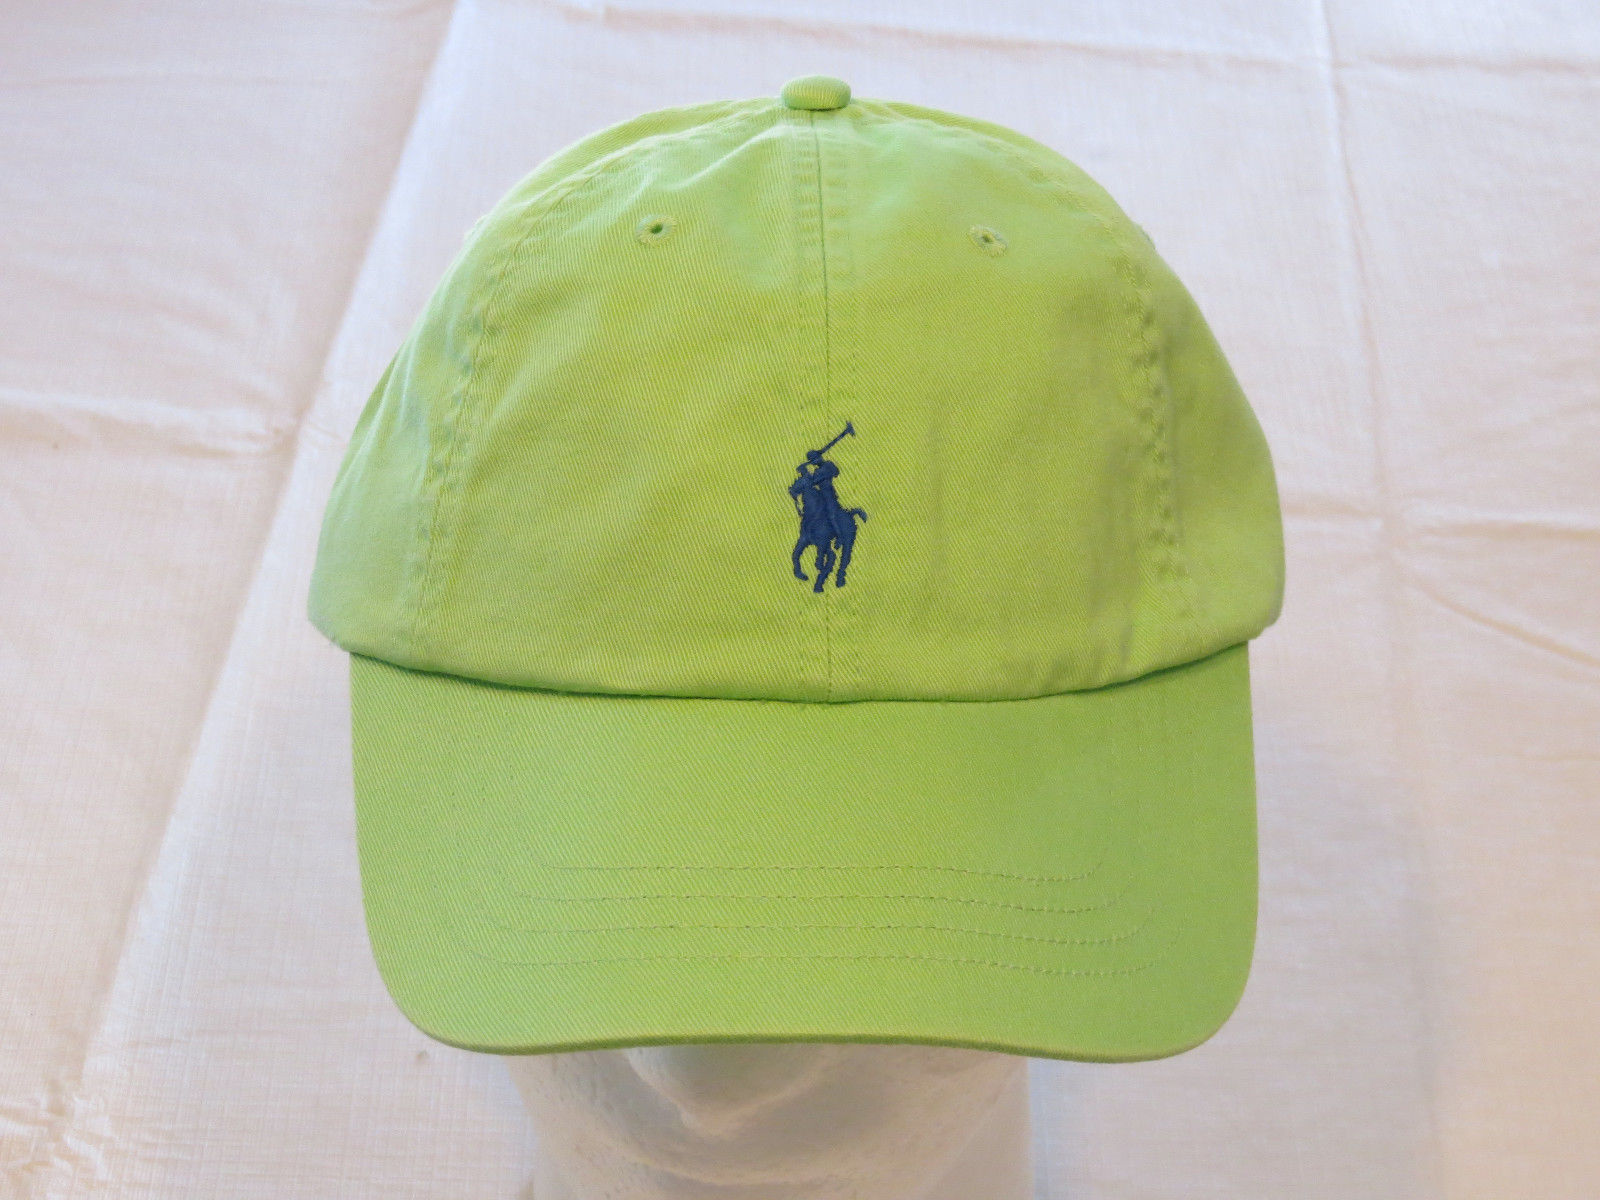 36b6fa0ad1b Mens Polo Ralph Lauren hat cap golf casual and 50 similar items. 57